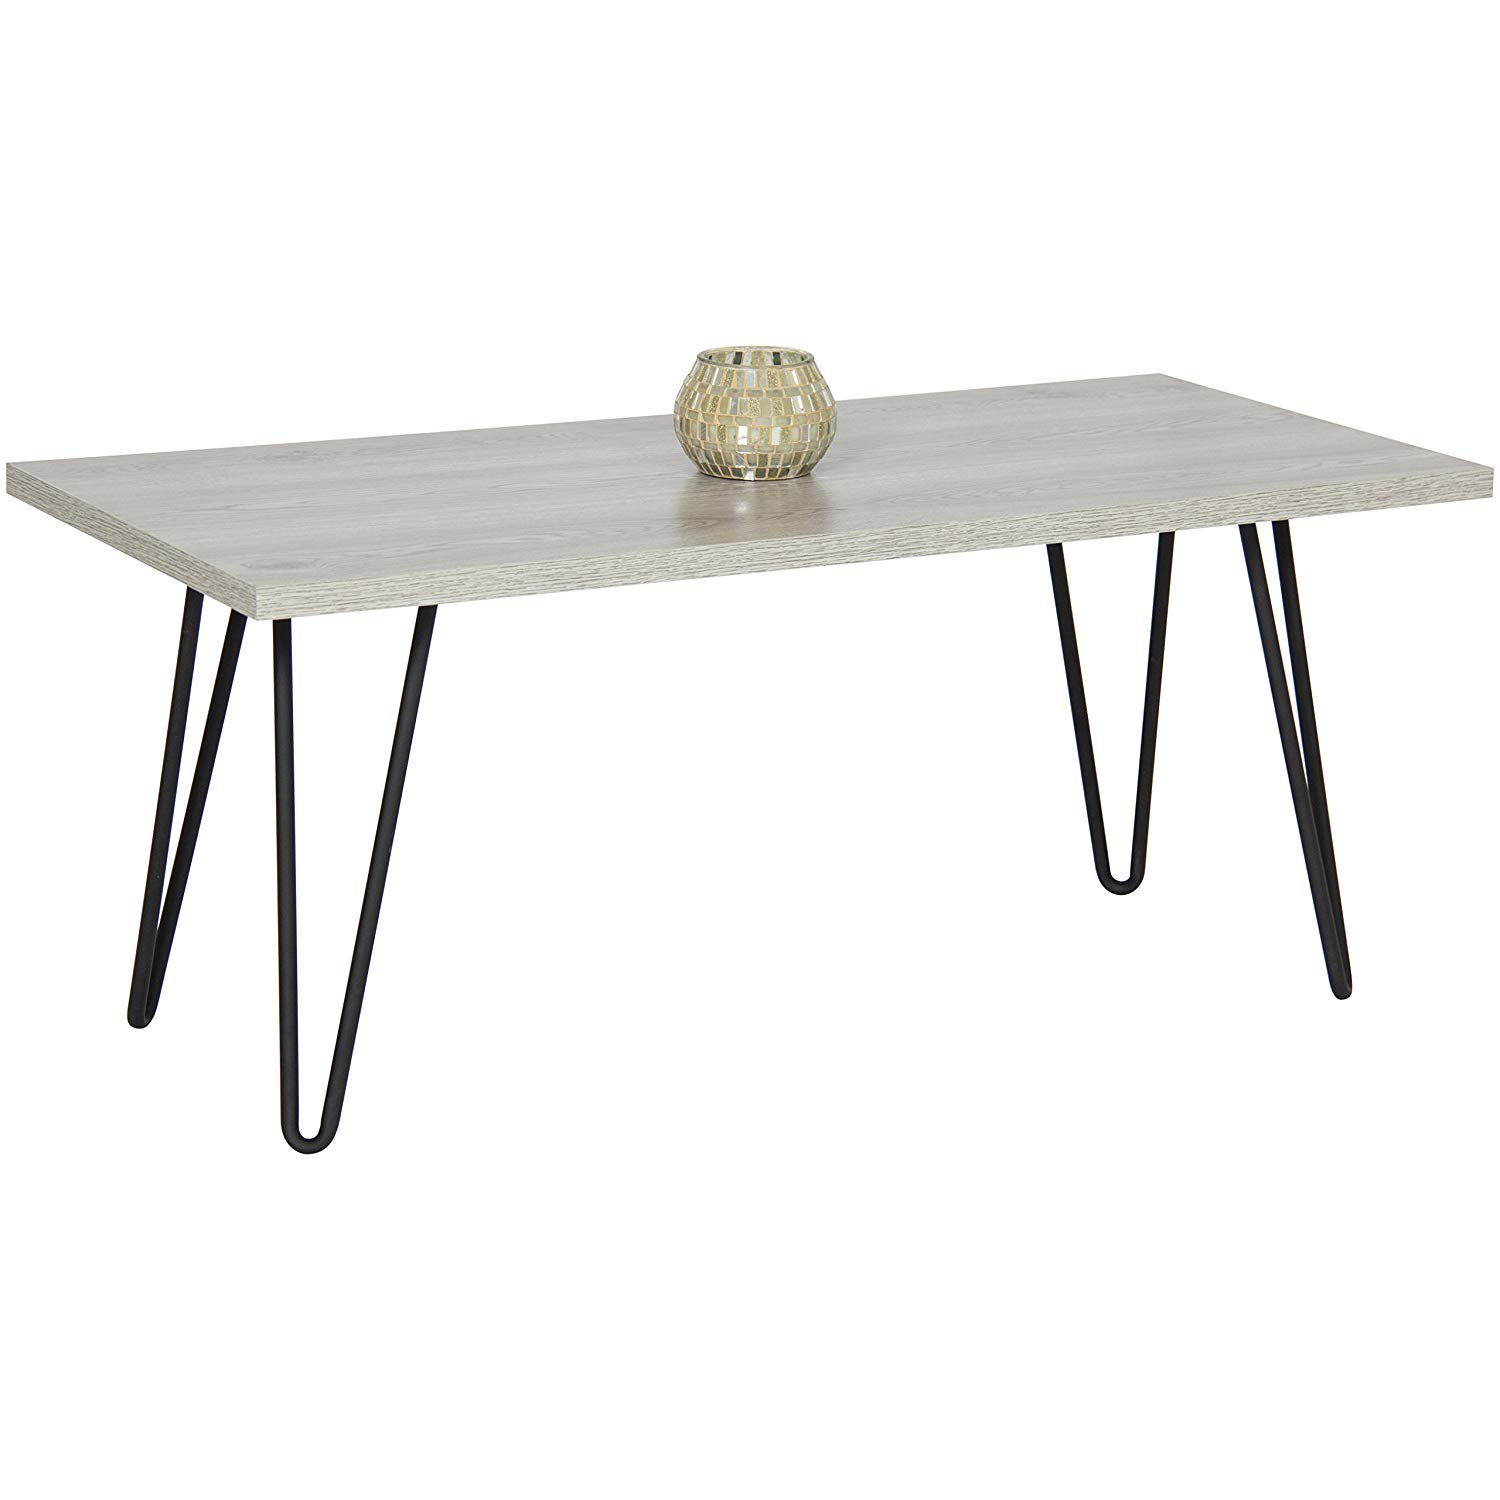 best choice products coffee table metal hairpin legs room essentials accent walnut home kitchen unstained furniture square toronto rustic usb port jcpenney drapes tablecloth for